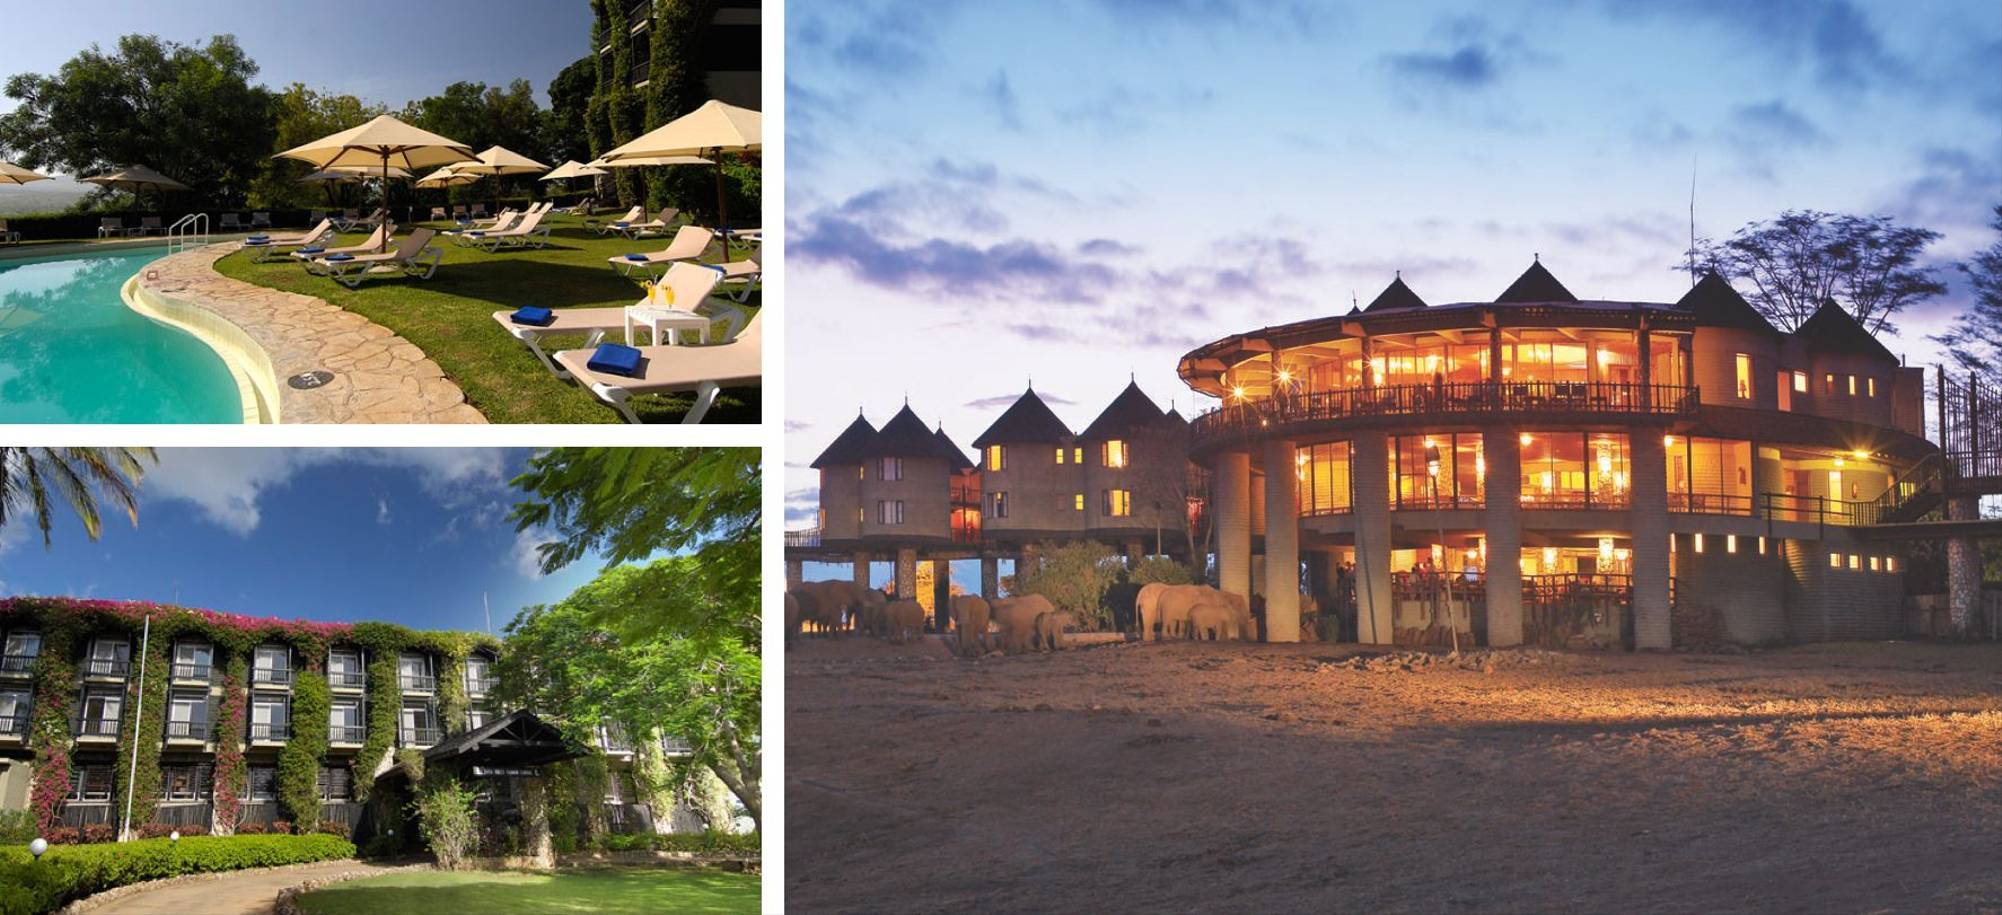 Salt Lick Game Lodge3 - Itinerary Desktop.jpg